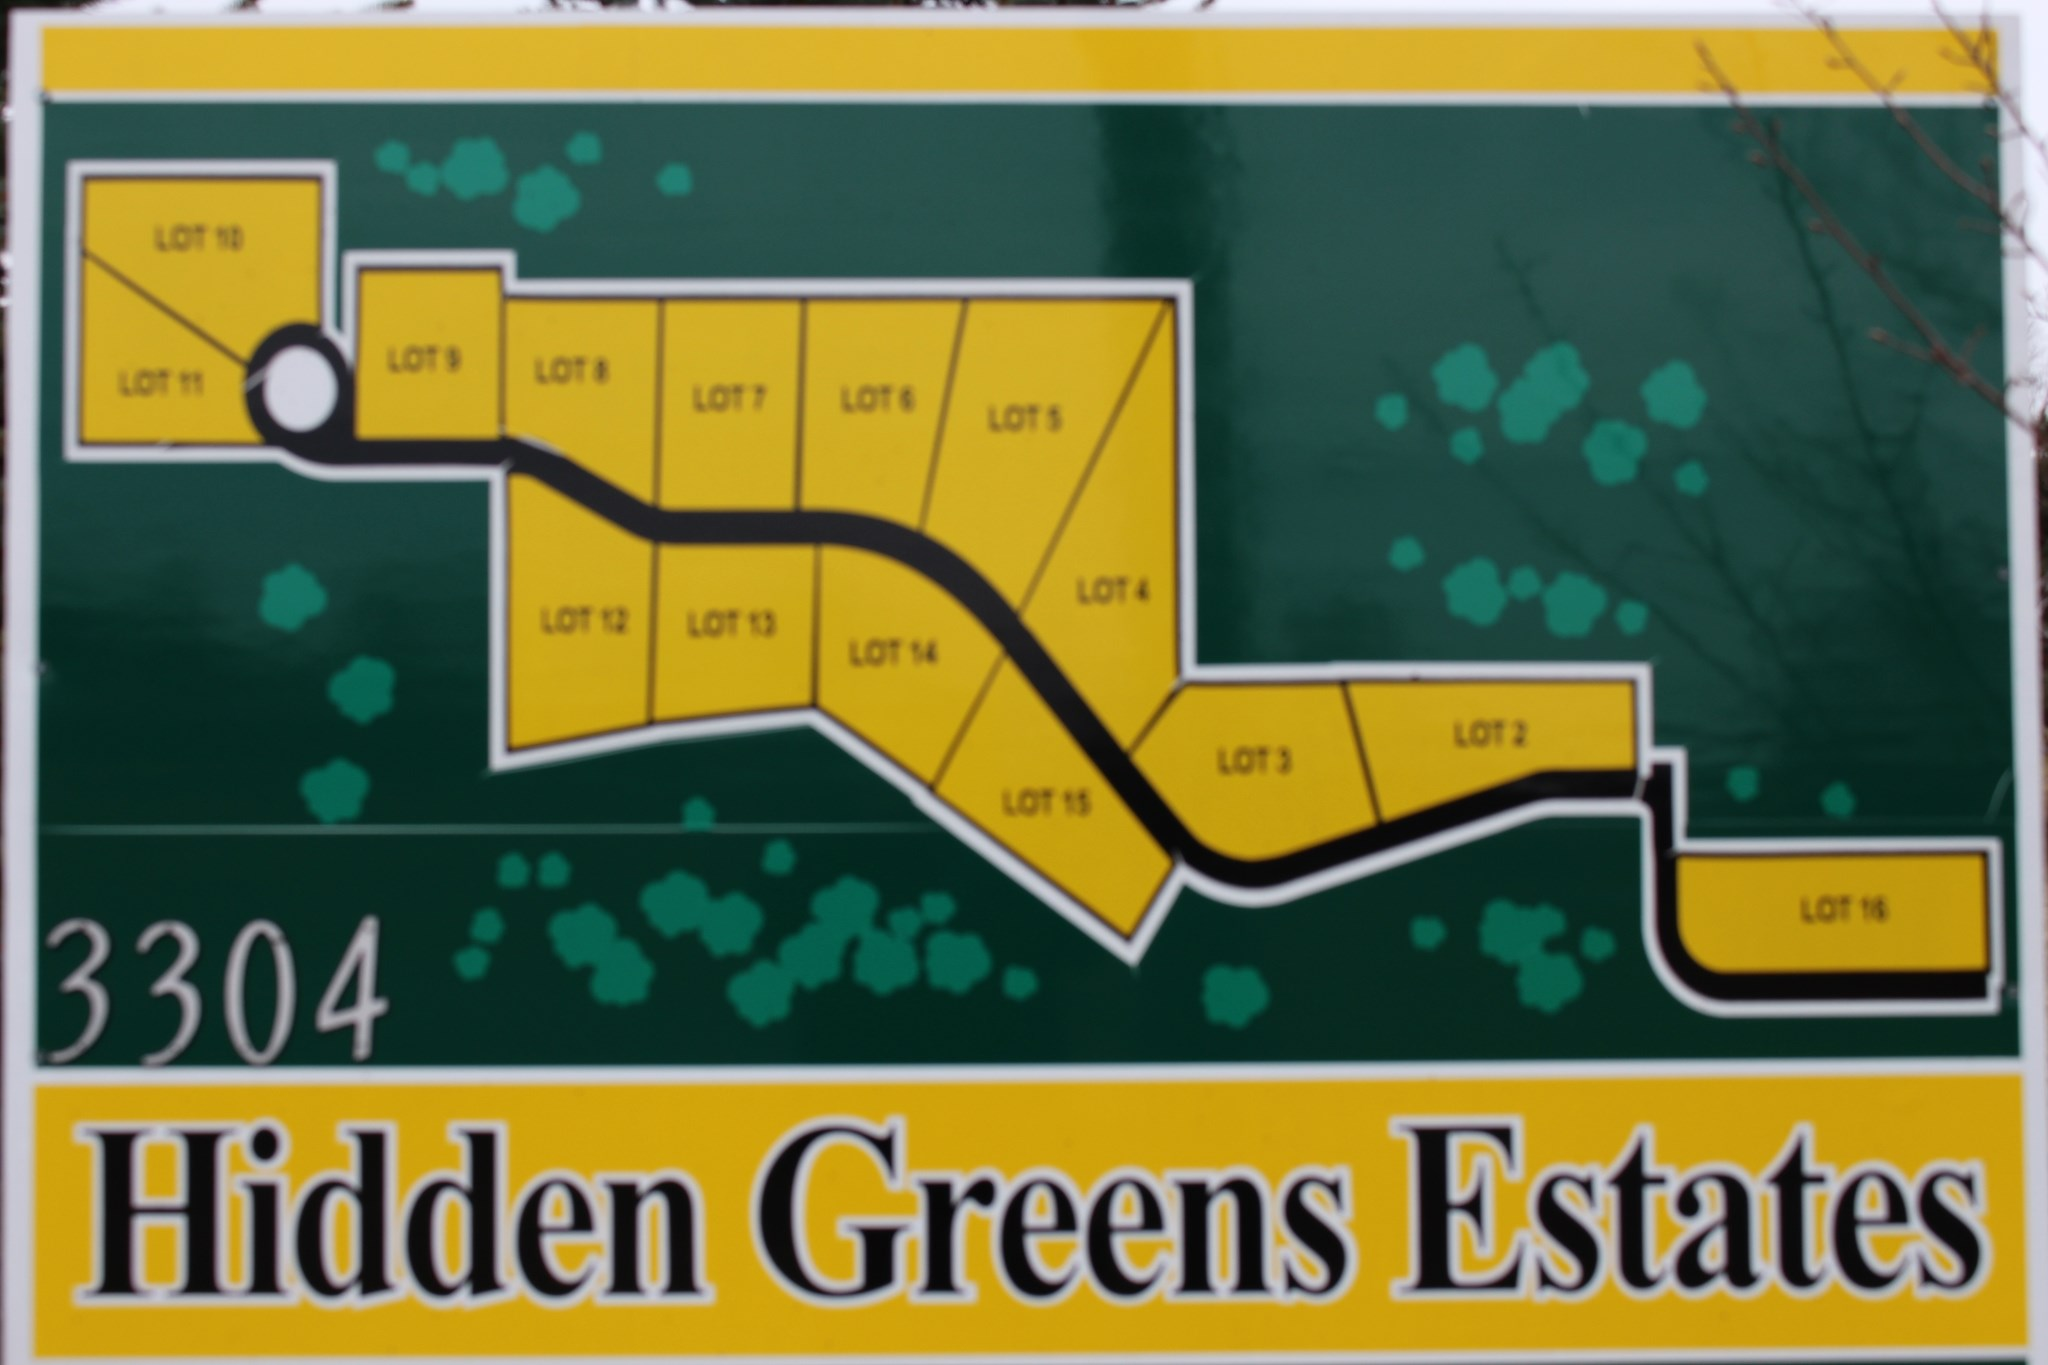 20 Hidden Greens Road, Brutus, NY 13166